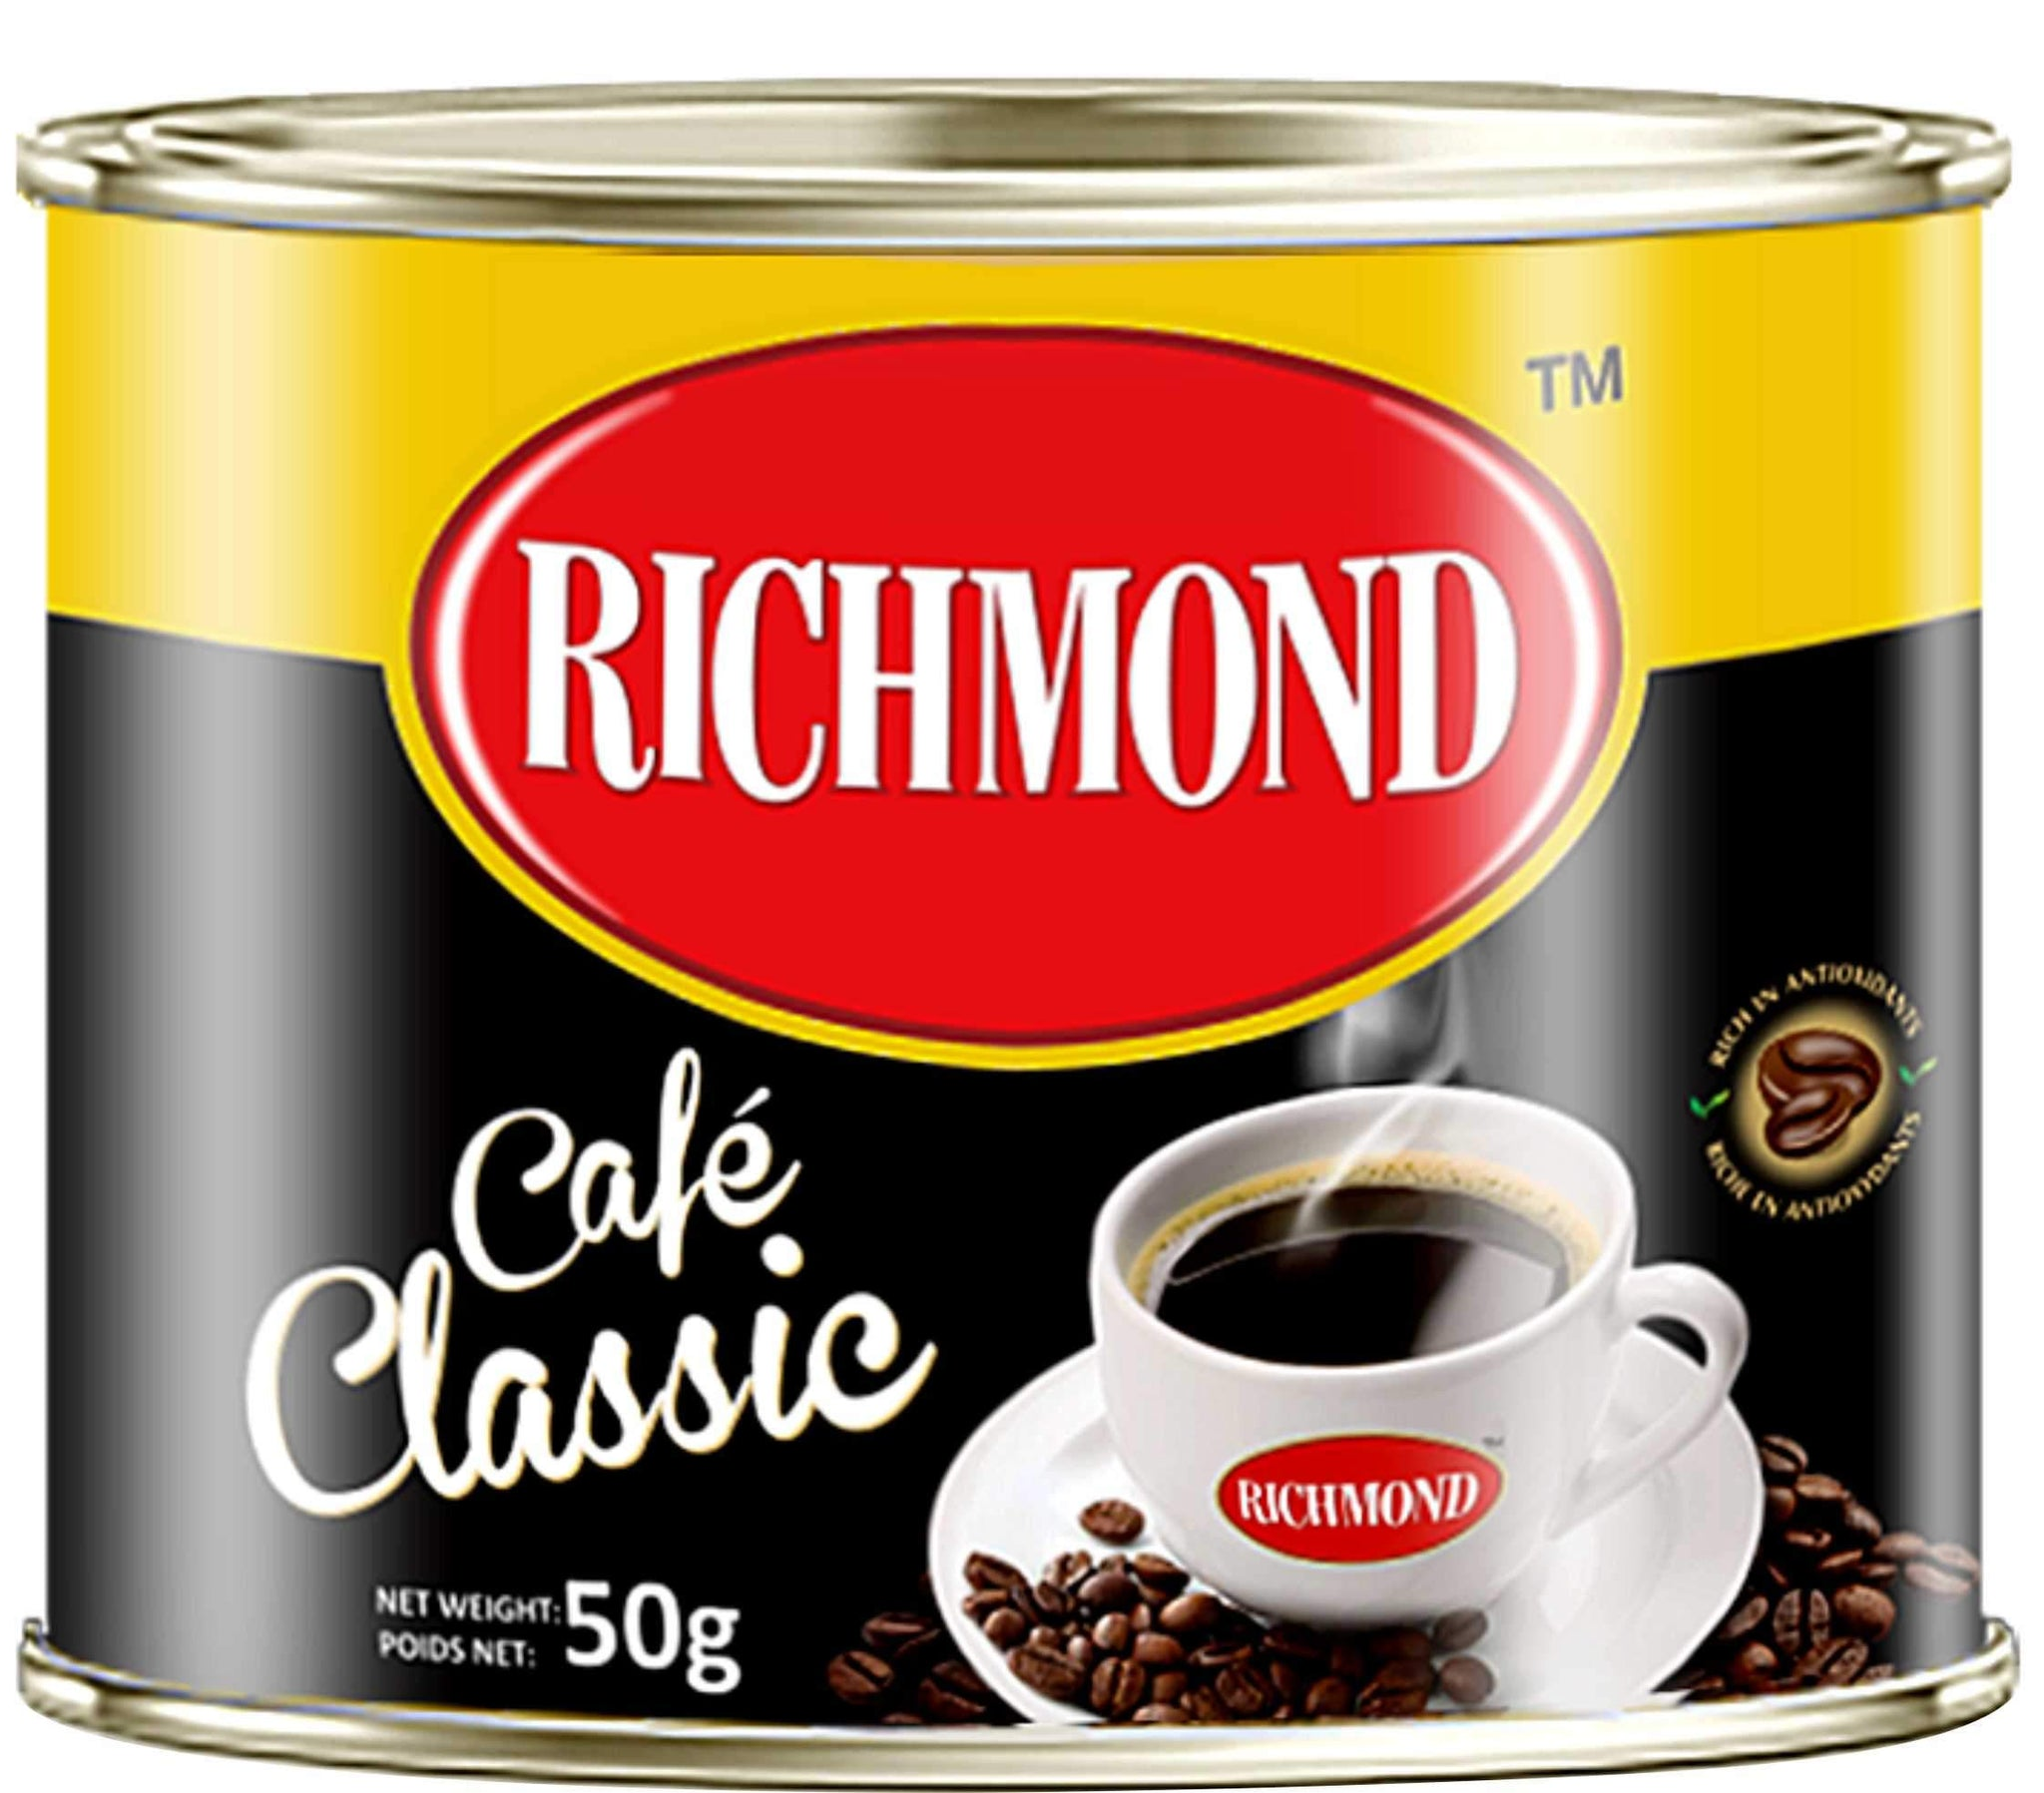 RICHMOND CAFE CLASSIC 50G